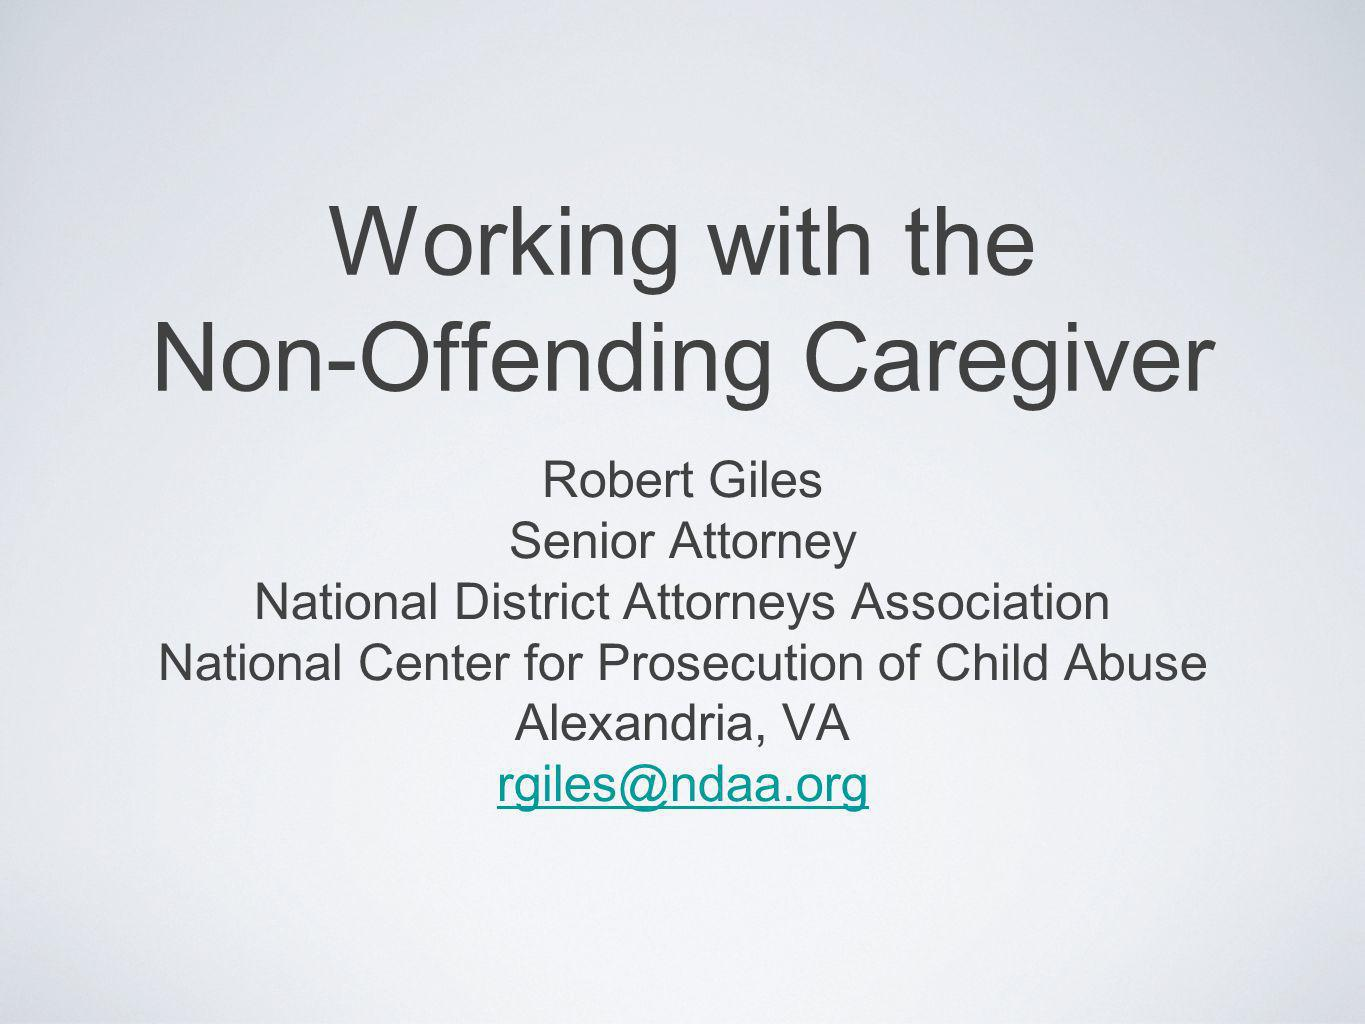 Working with the Non-Offending Caregiver